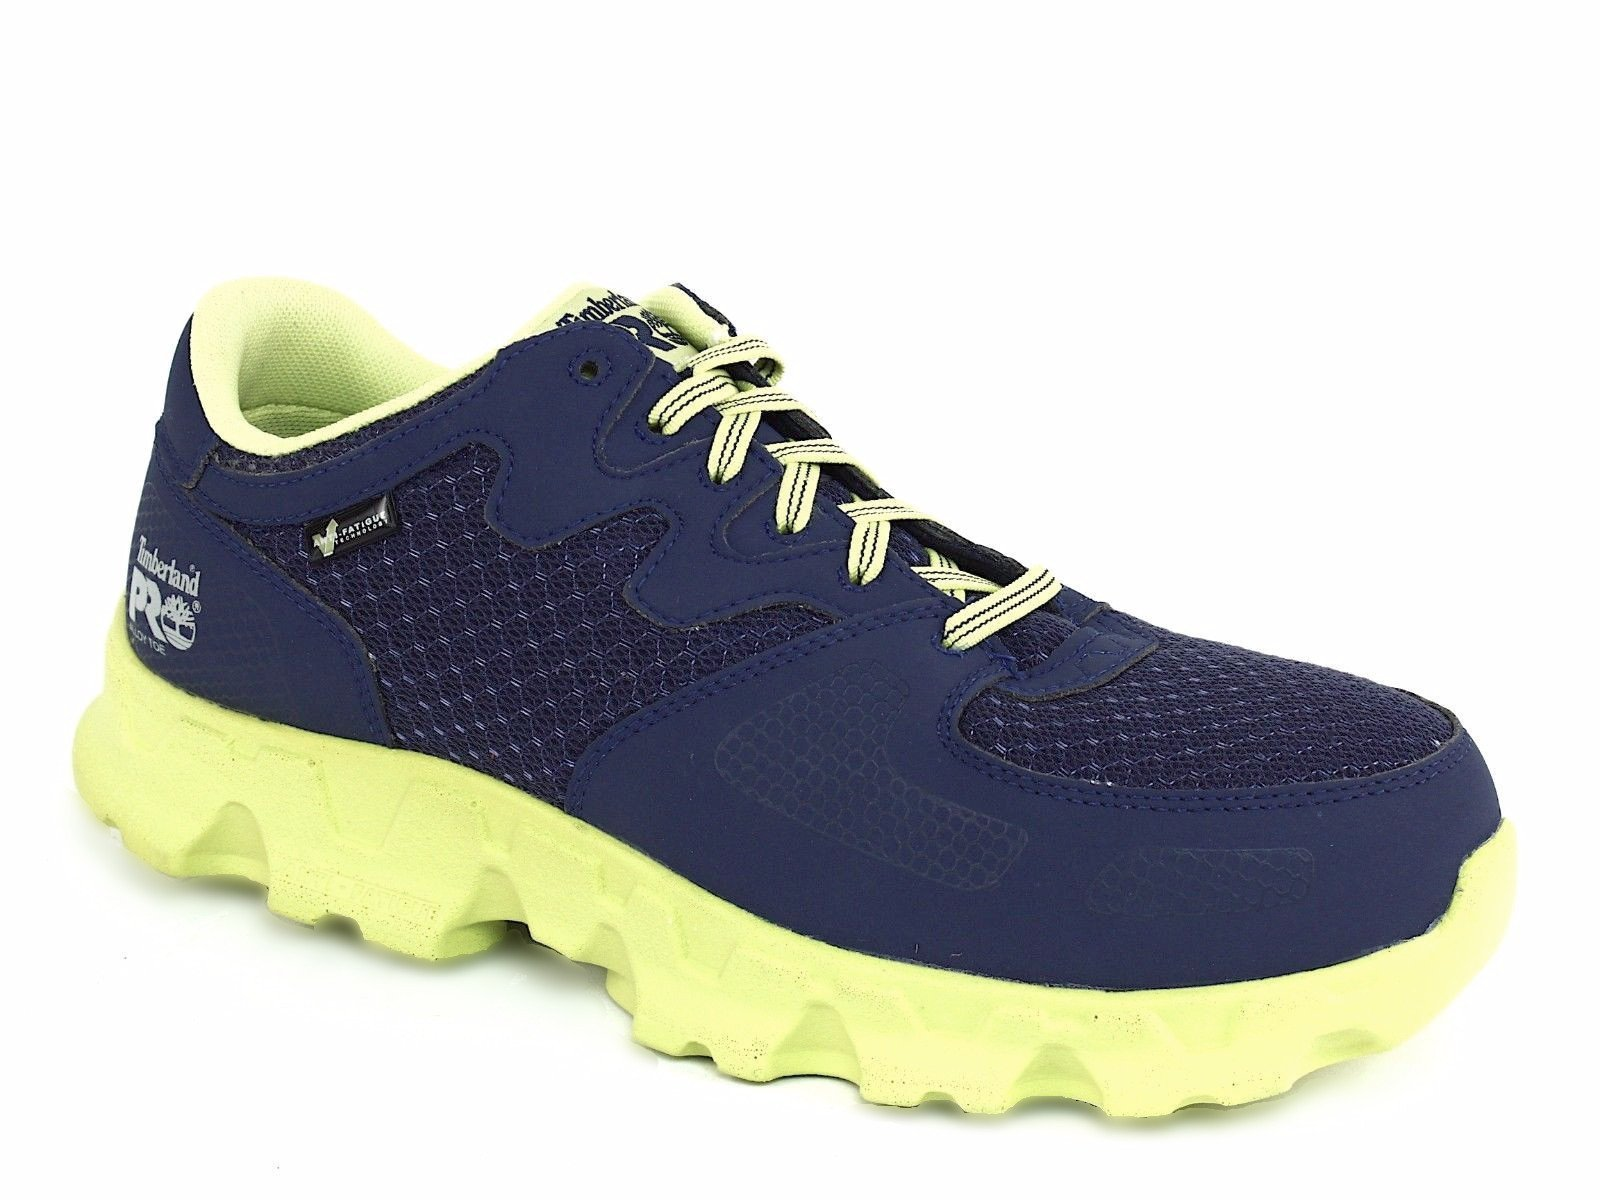 Timberland PRO Men's Powertrain Alloy Toe EH Industrial Shoe,Navy/High Vis Green Microfiber And Textile,9.5 M US